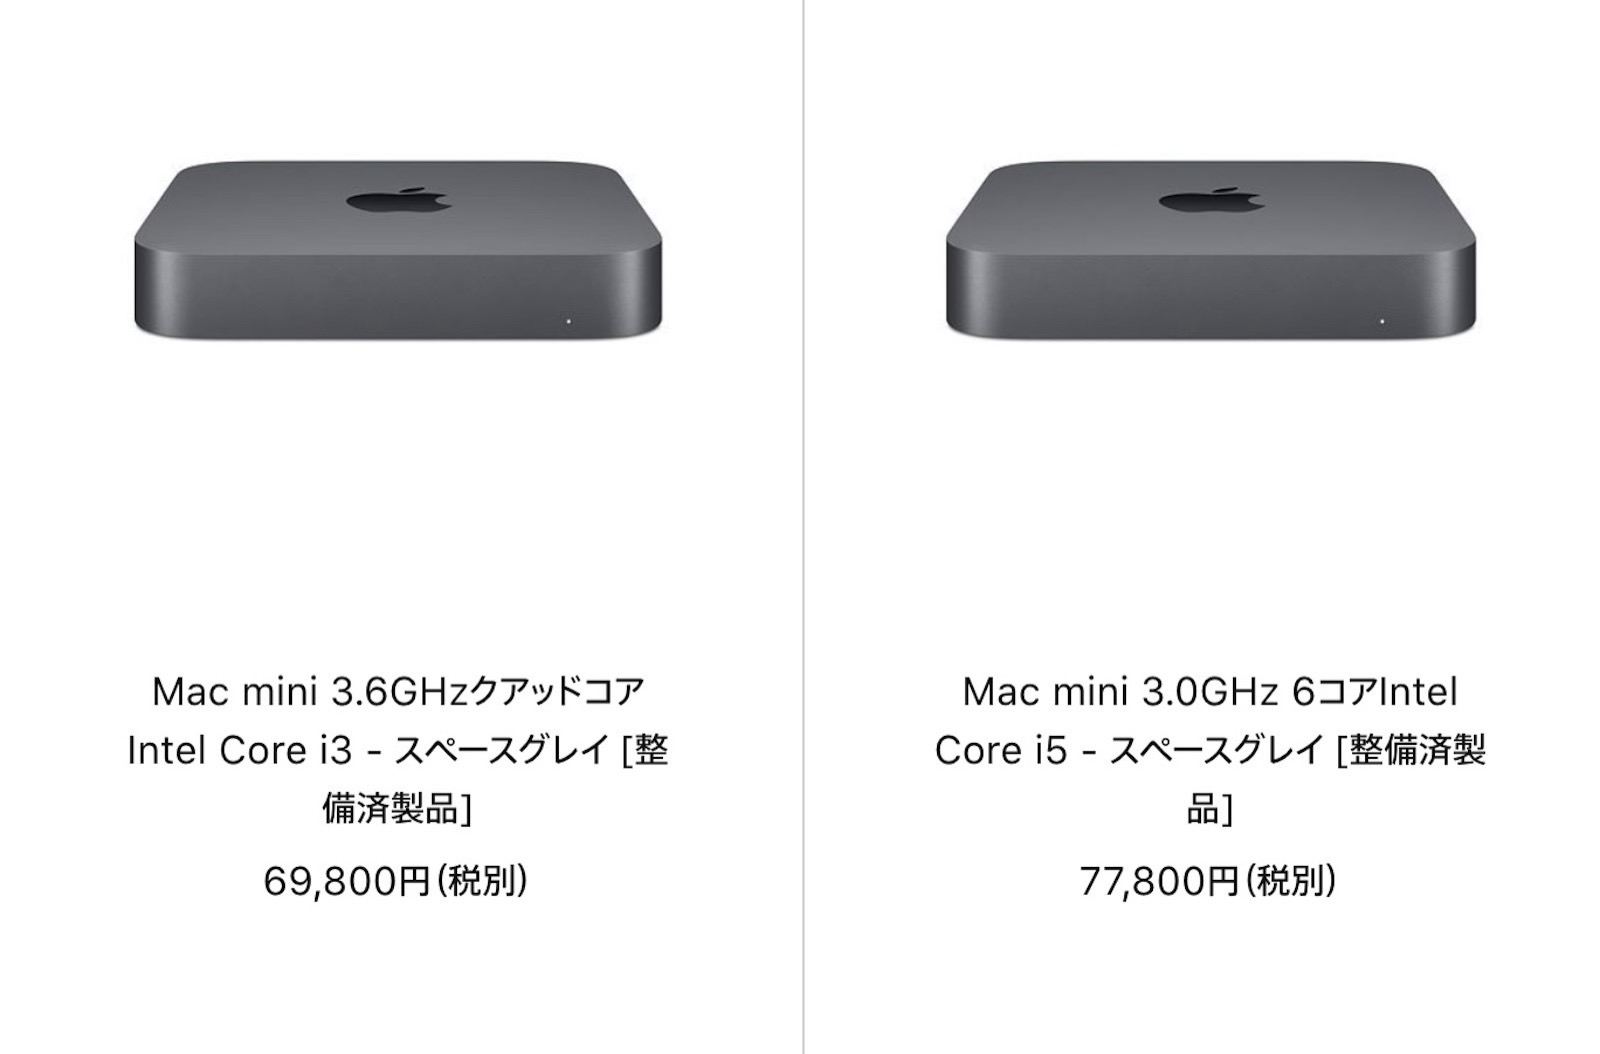 mac-mini-refurbished-models.jpg